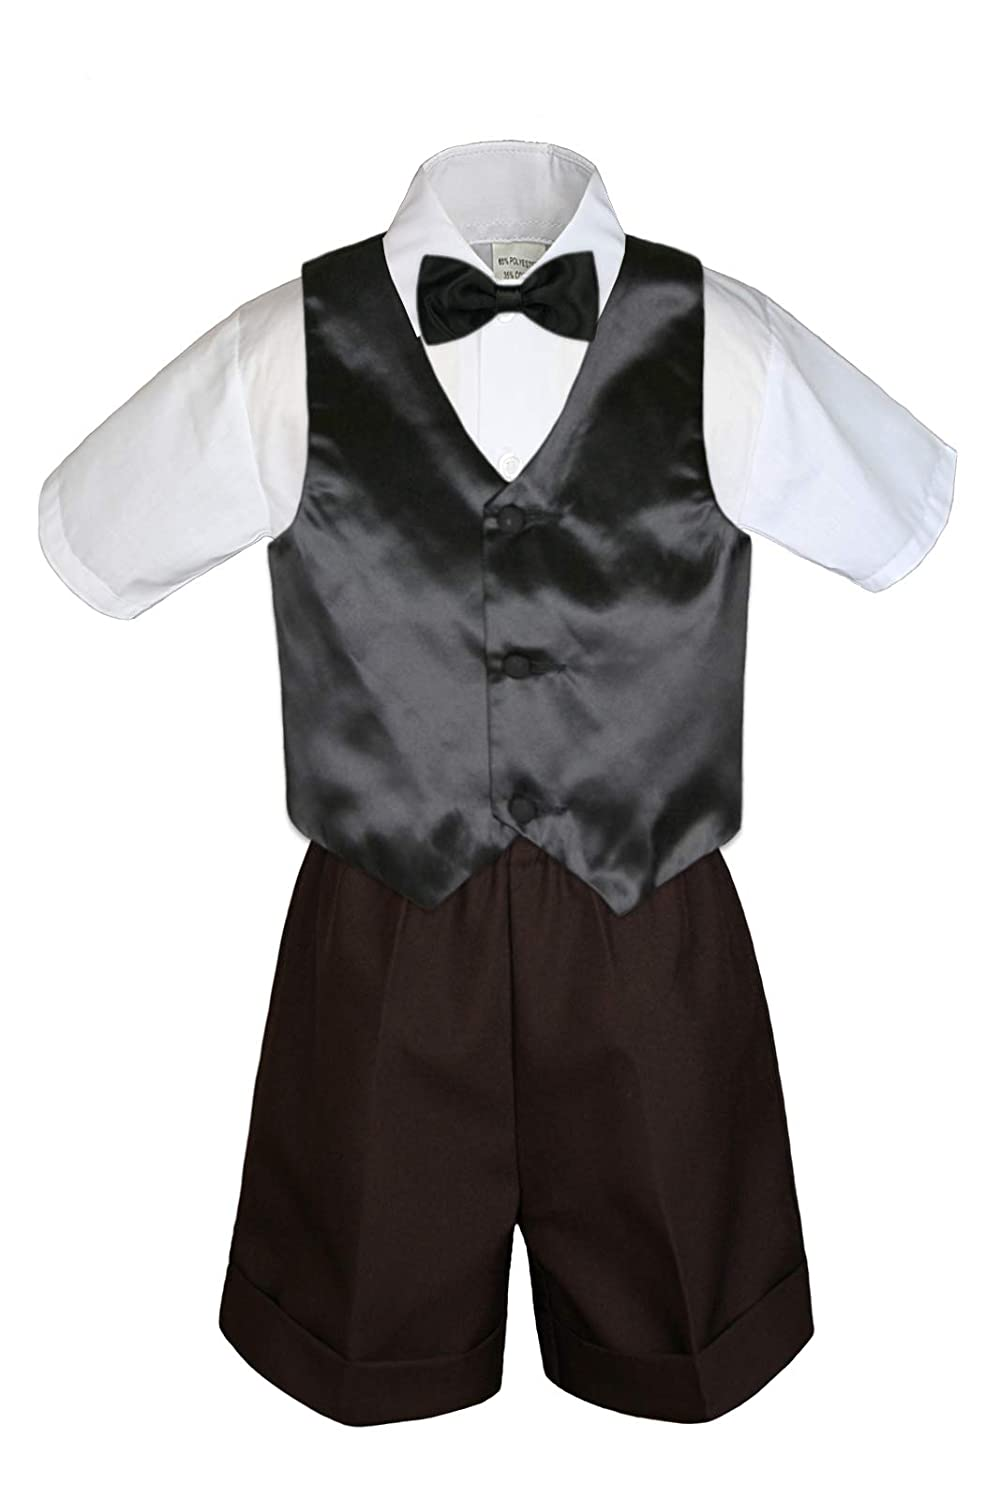 MILLTEX 4 Pieces Set Formal Party Wedding Color Satin Vest /& Bow tie Shirt Brown Shorts Set New Born Baby Boy Toddler Sm-4T